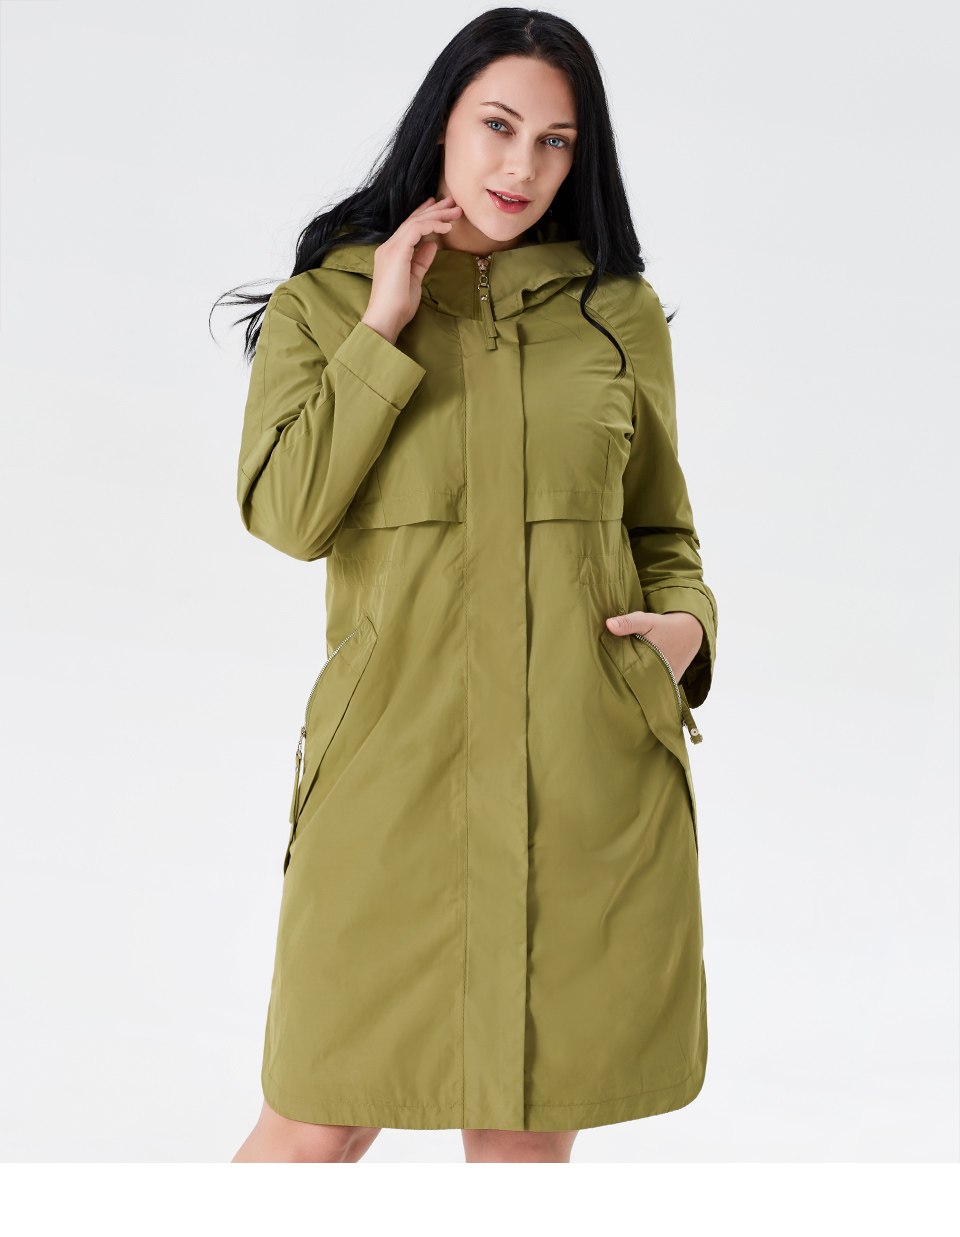 19 Trench Coat Spring And Autumn Women Causal coat Long Sleeve With Hood Solid color female moda muje High Quality new AS-9046 1